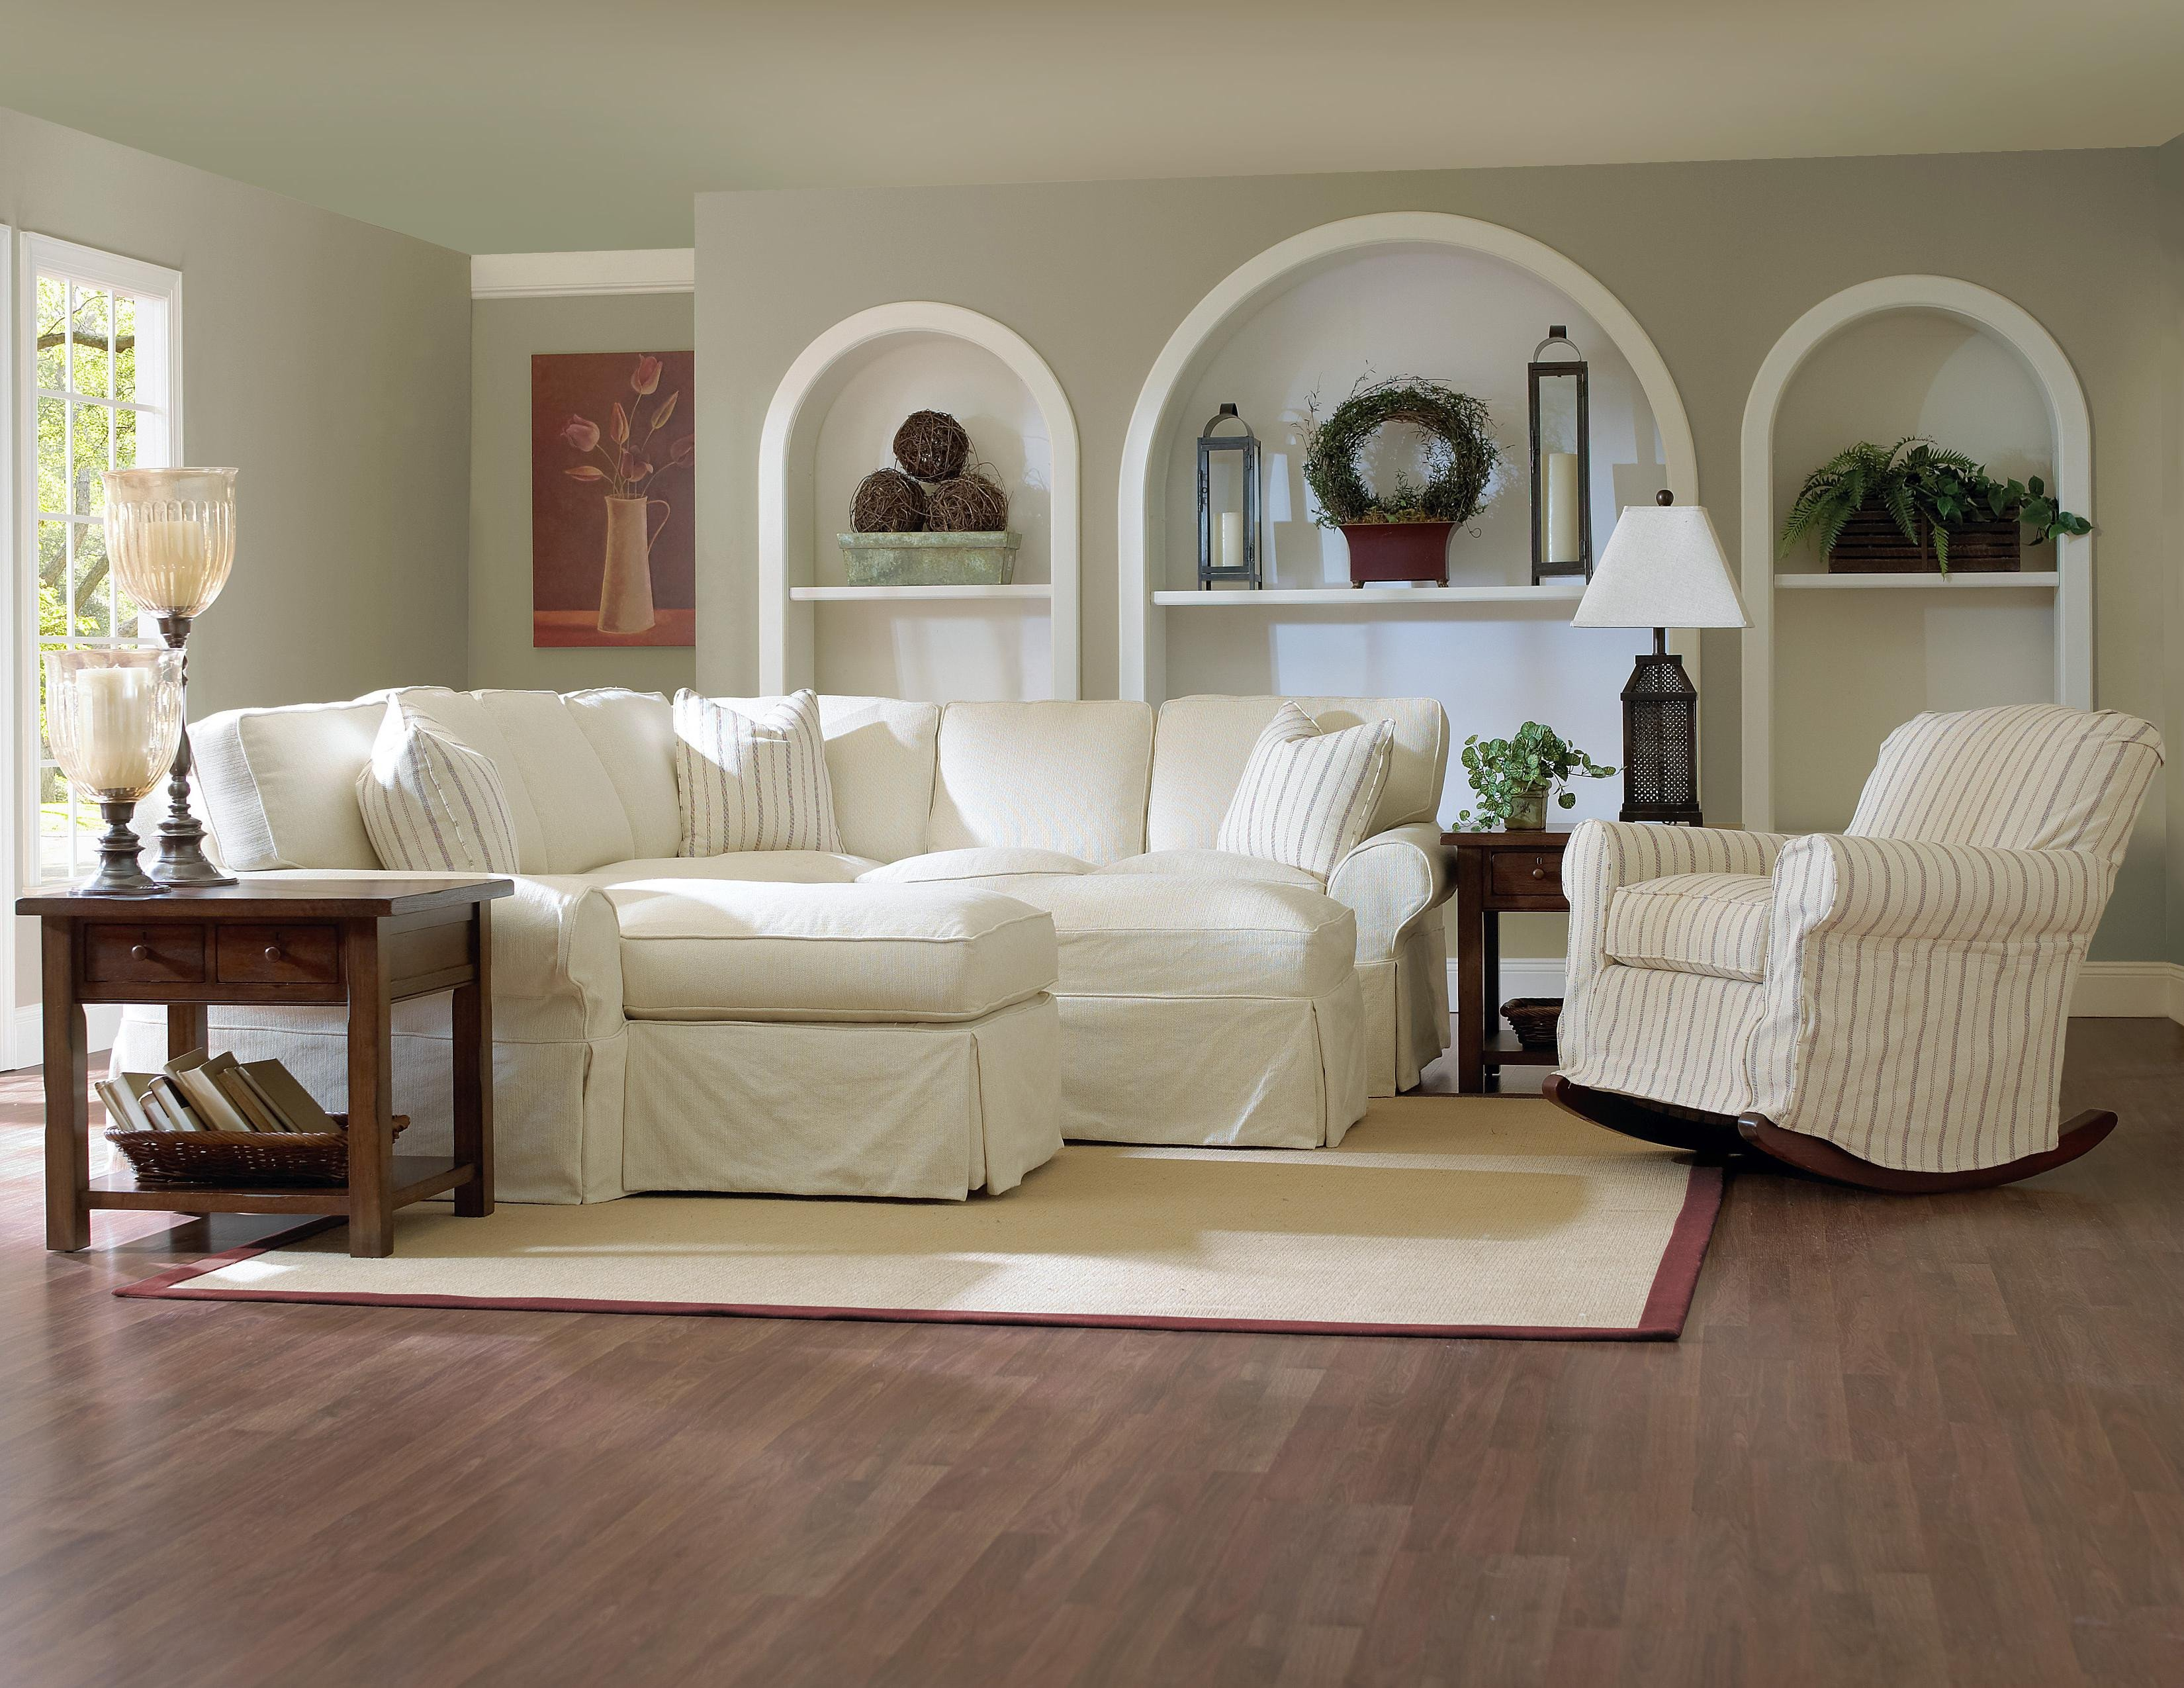 Comfortable Couches Living Room New Furniture fortable Sectionals sofa for Elegant Living Room Furniture Design